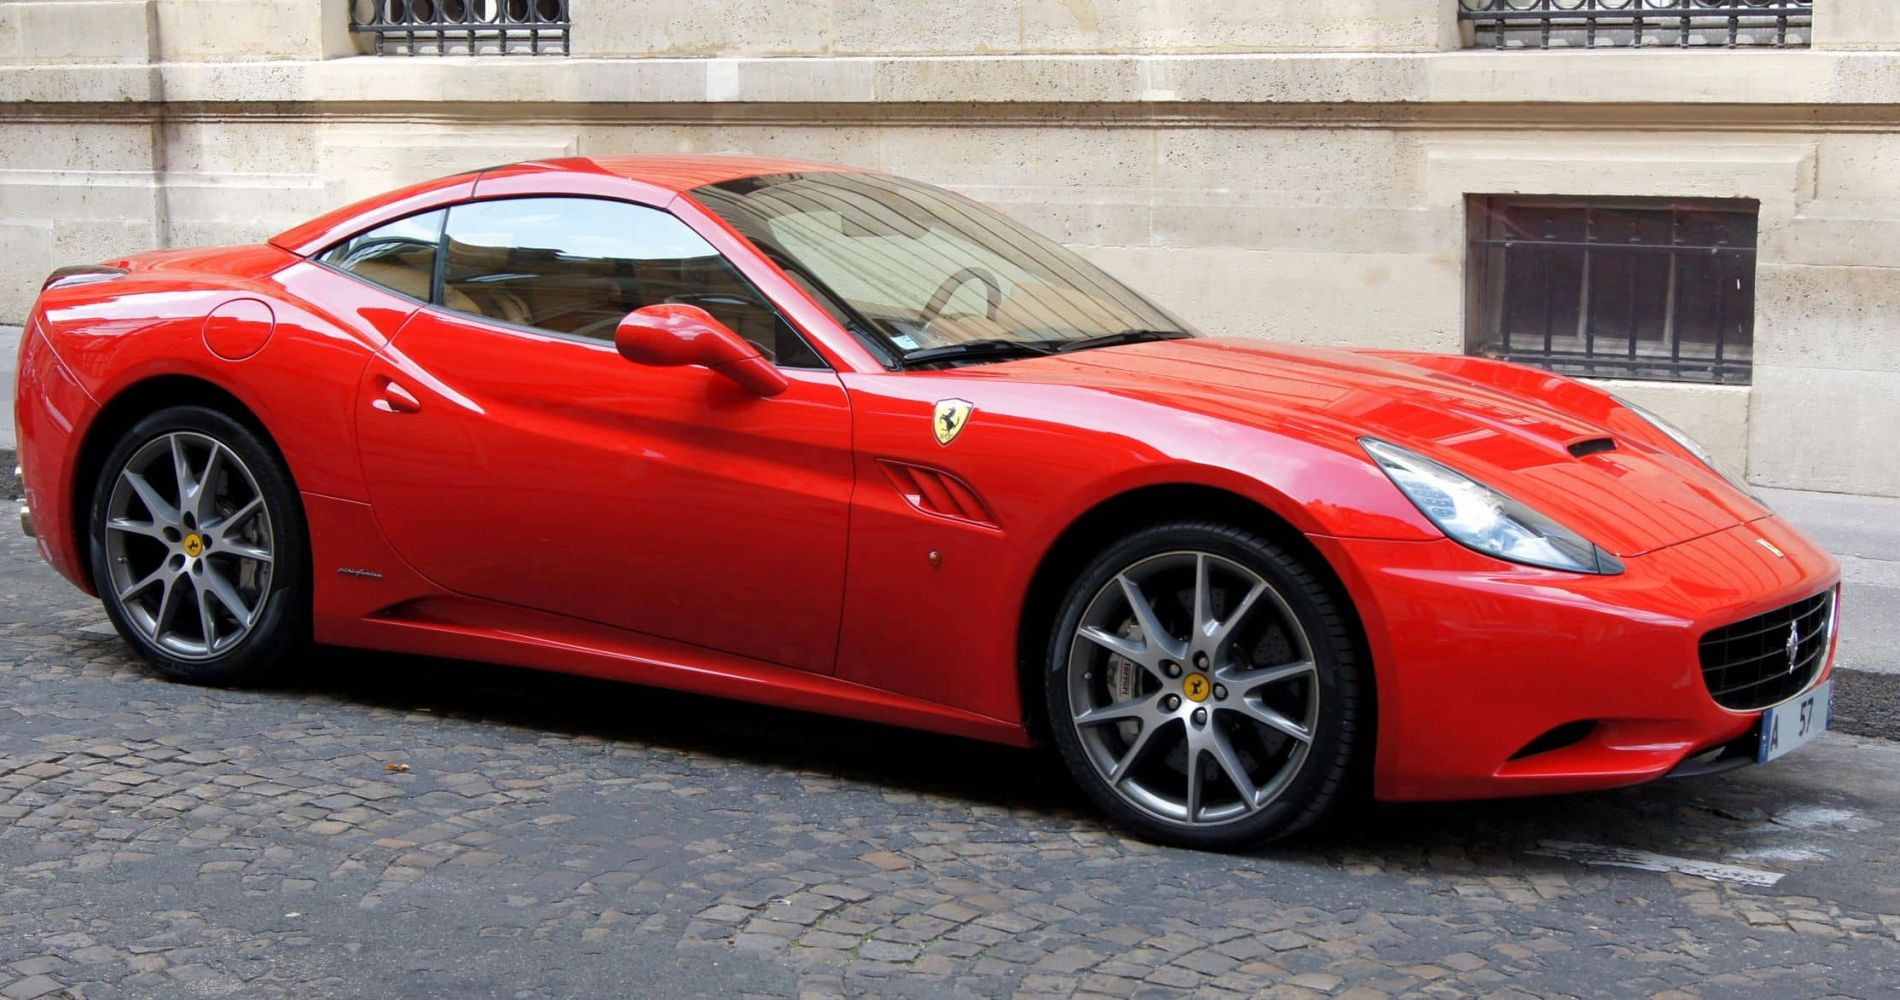 Ferrari Driving Experience in Italy